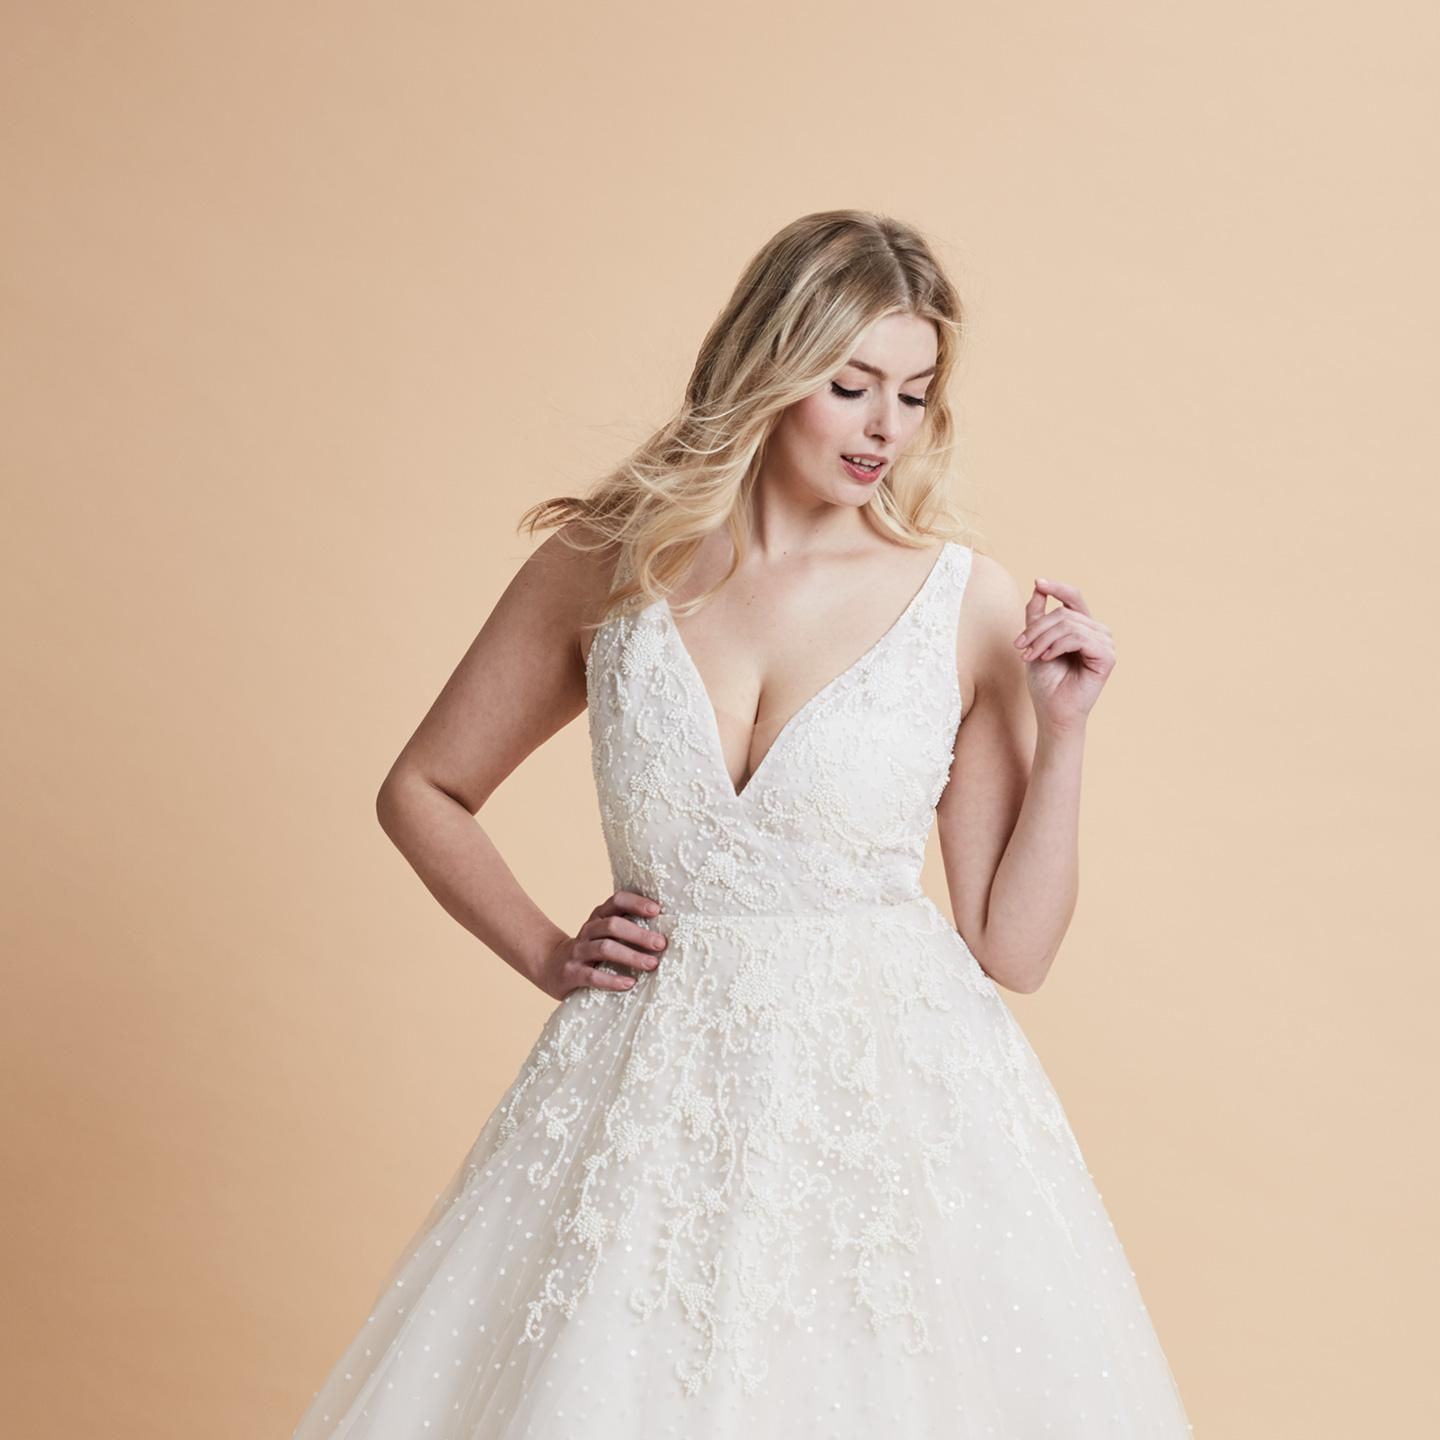 Weddings Beauty And Attire: 35 Designer Plus Size Wedding Dresses We Love